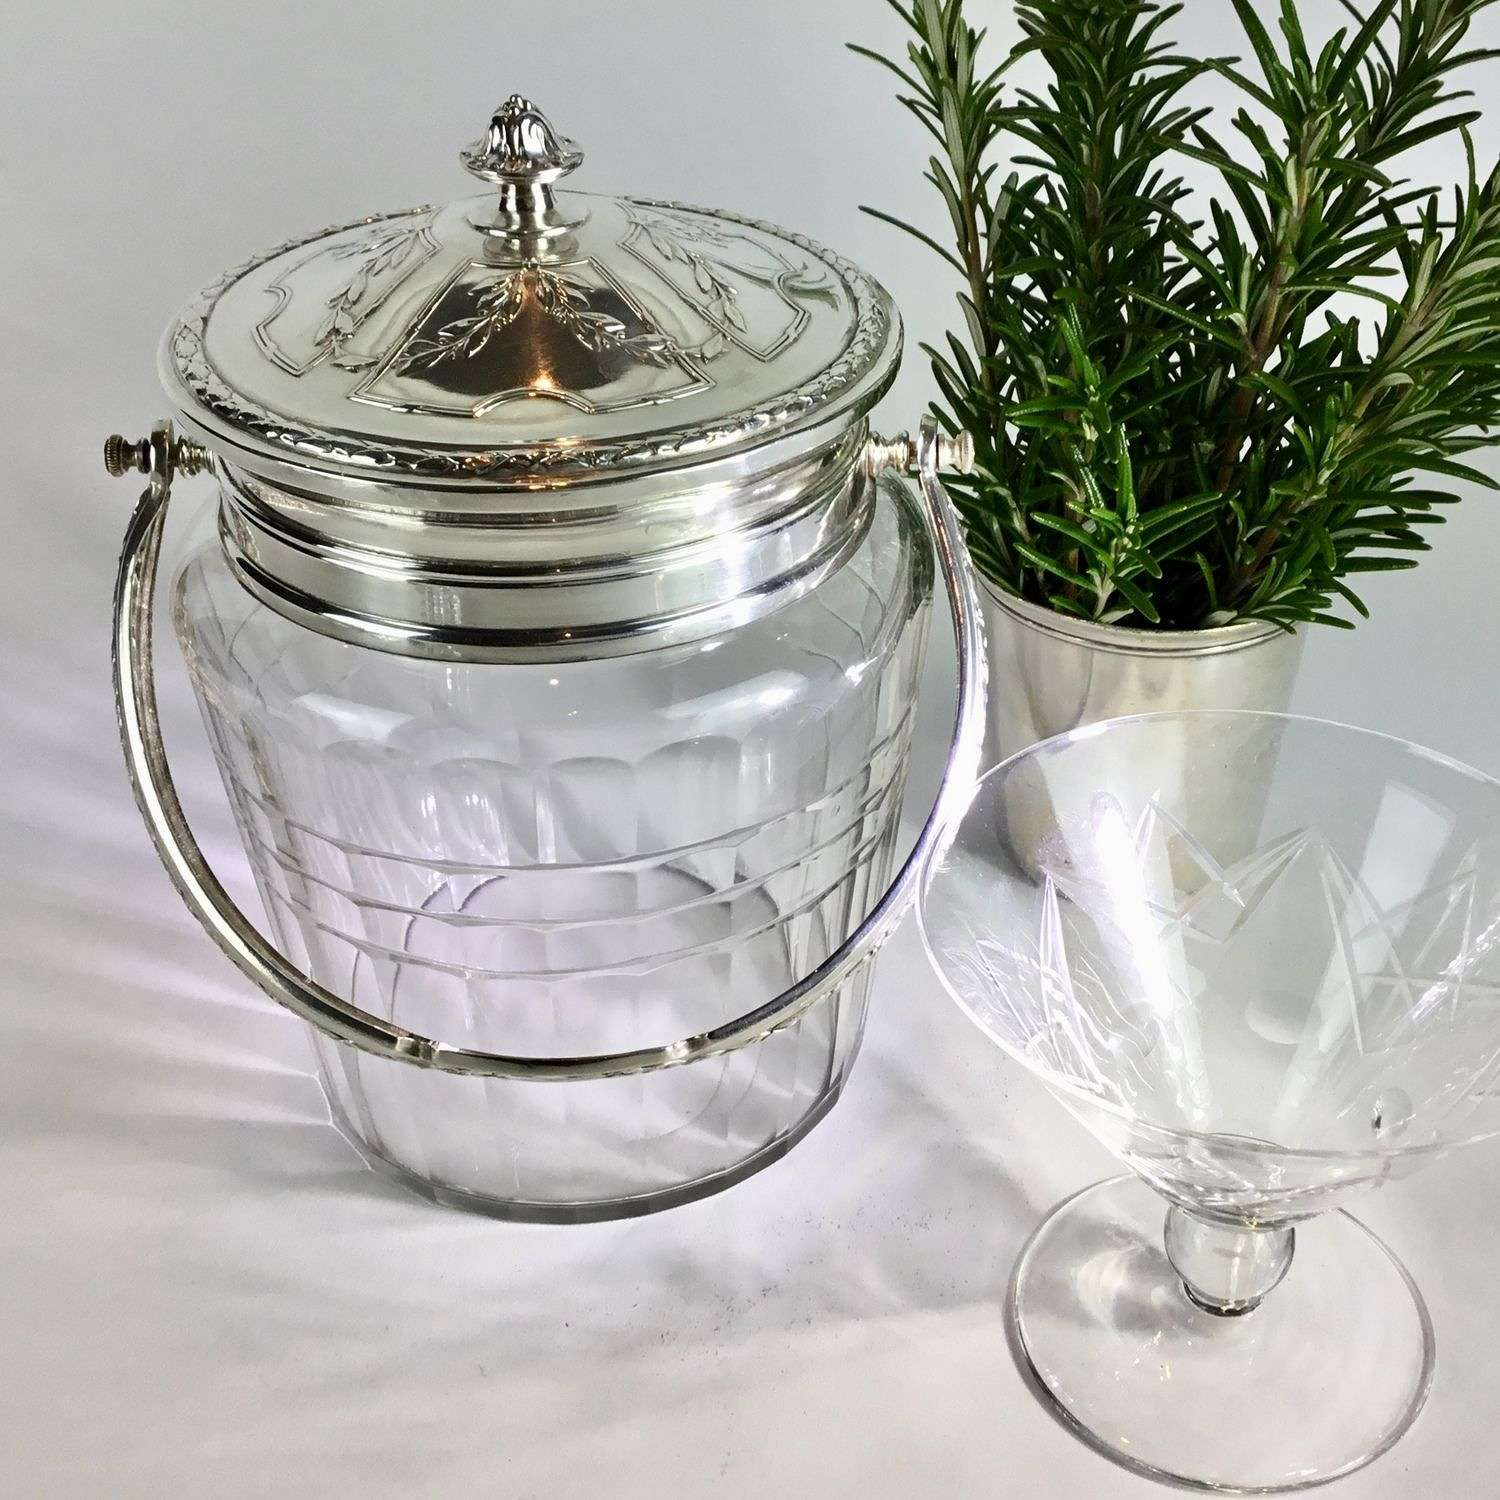 Rare French Art Nouveau Christofle Gallia silver plated biscuit barrel